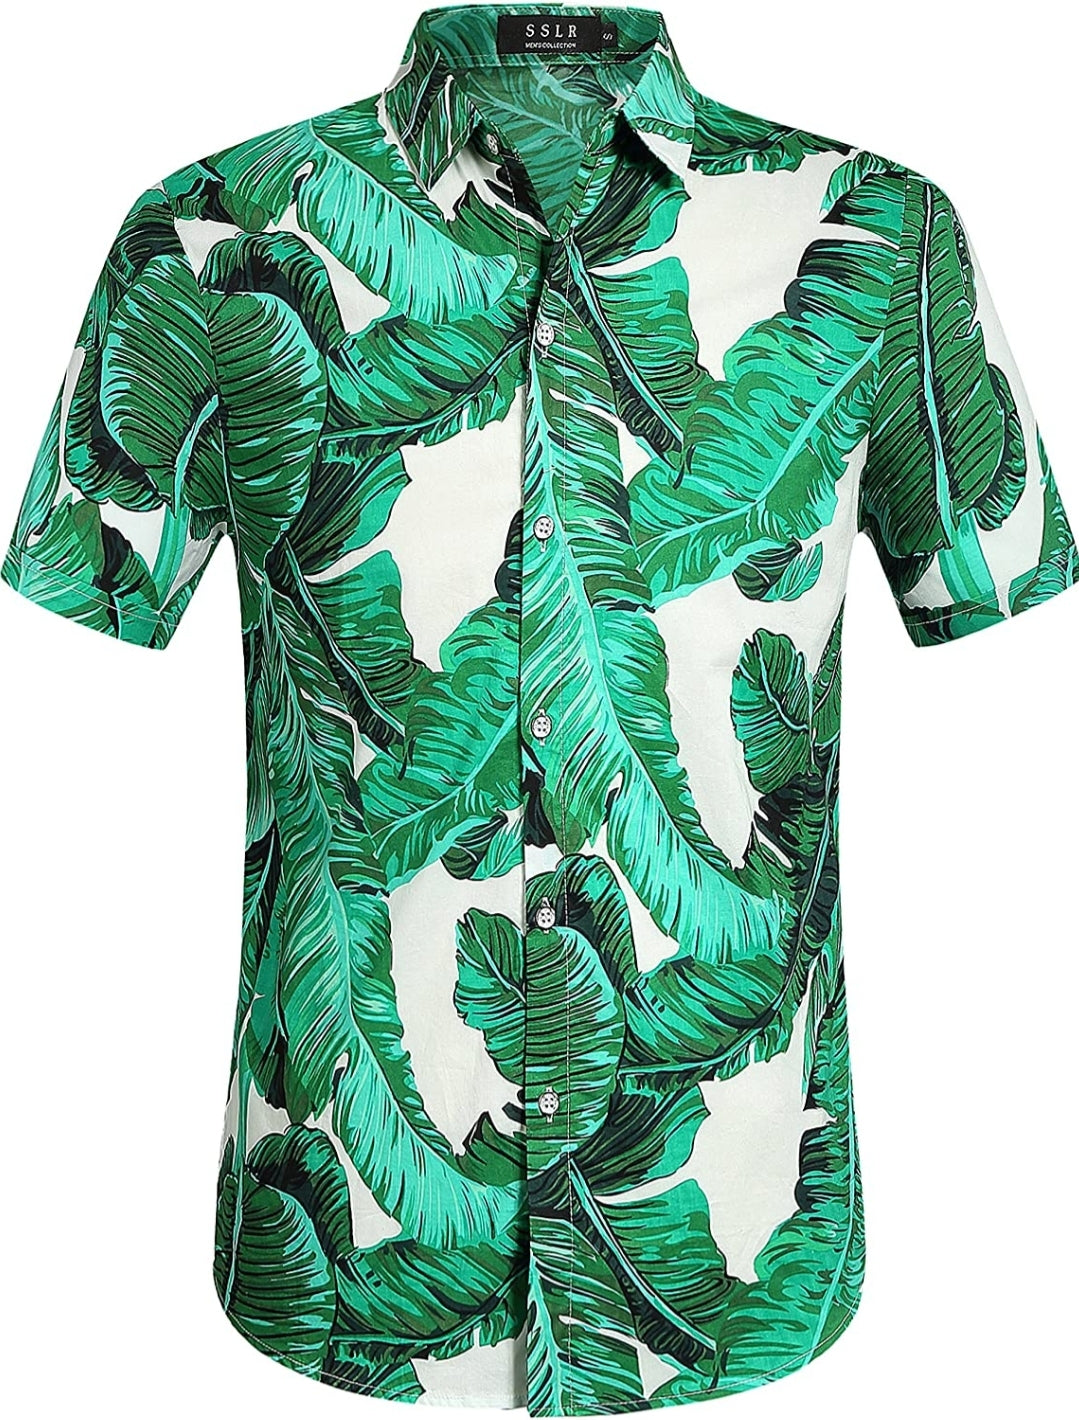 Men's Signature Tropical Palm Leaves Button-up Shirt